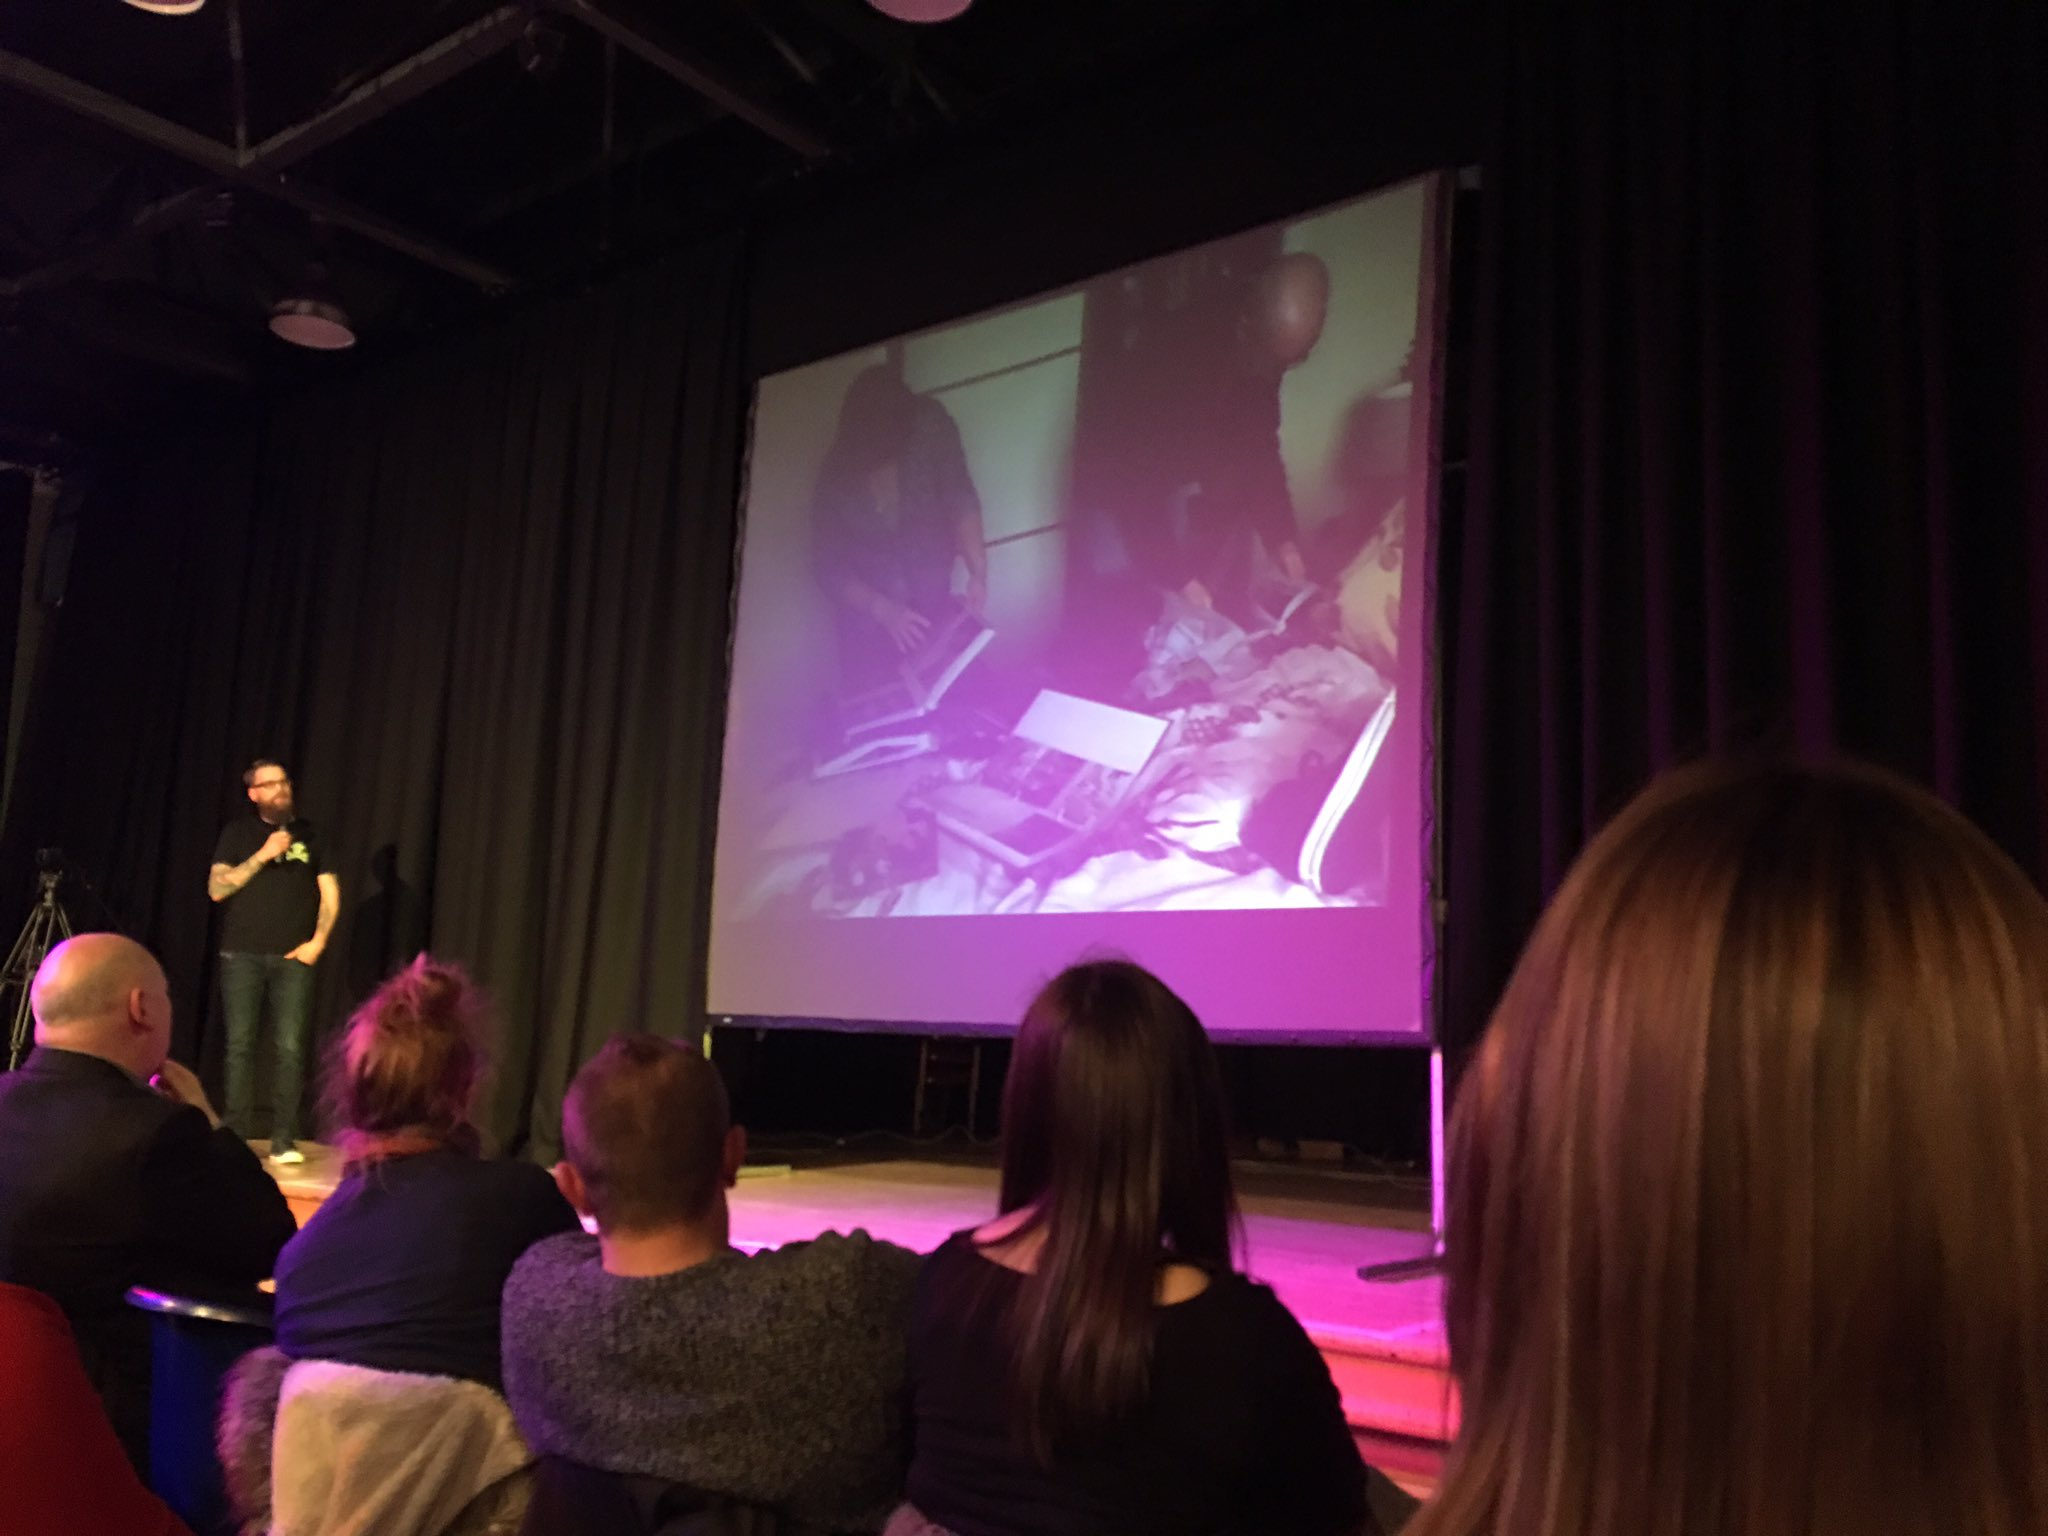 You can't always trust your memory so don't skimp on the triggers (pictures/videos etc) as you will not be able to rewind the past #PKN_DND https://t.co/ReQFdDzhSS